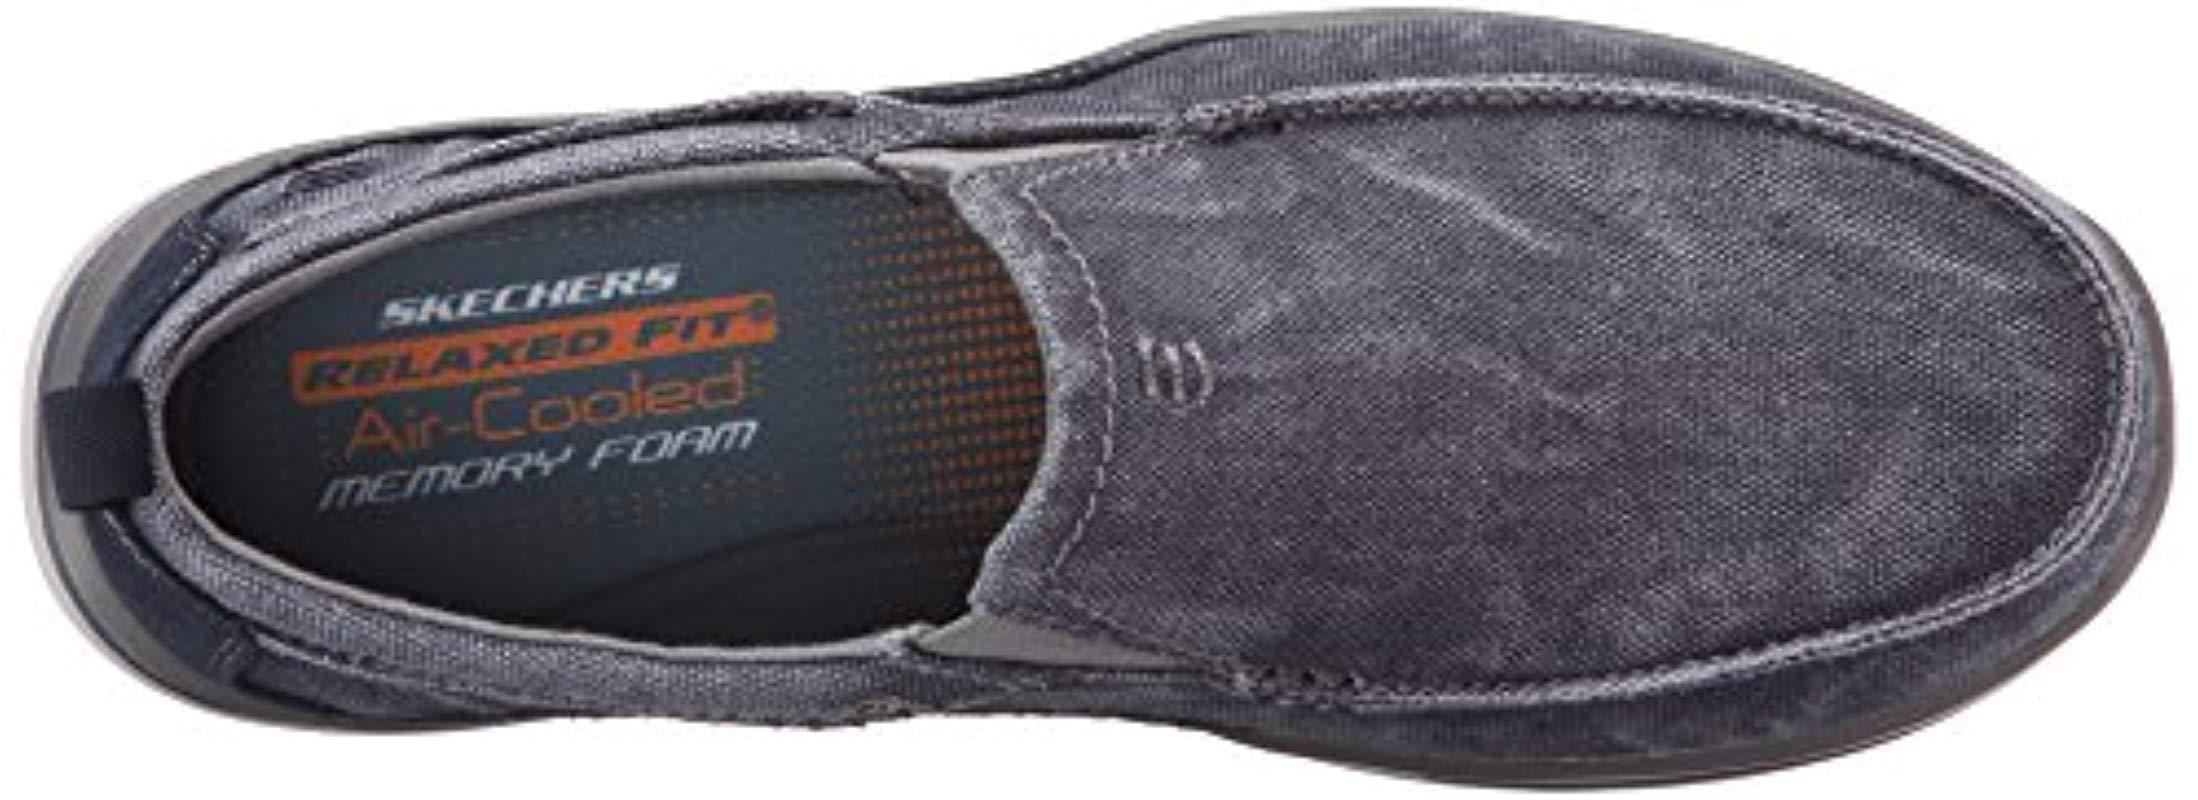 Relaxed Fit-elected-drigo Loafer